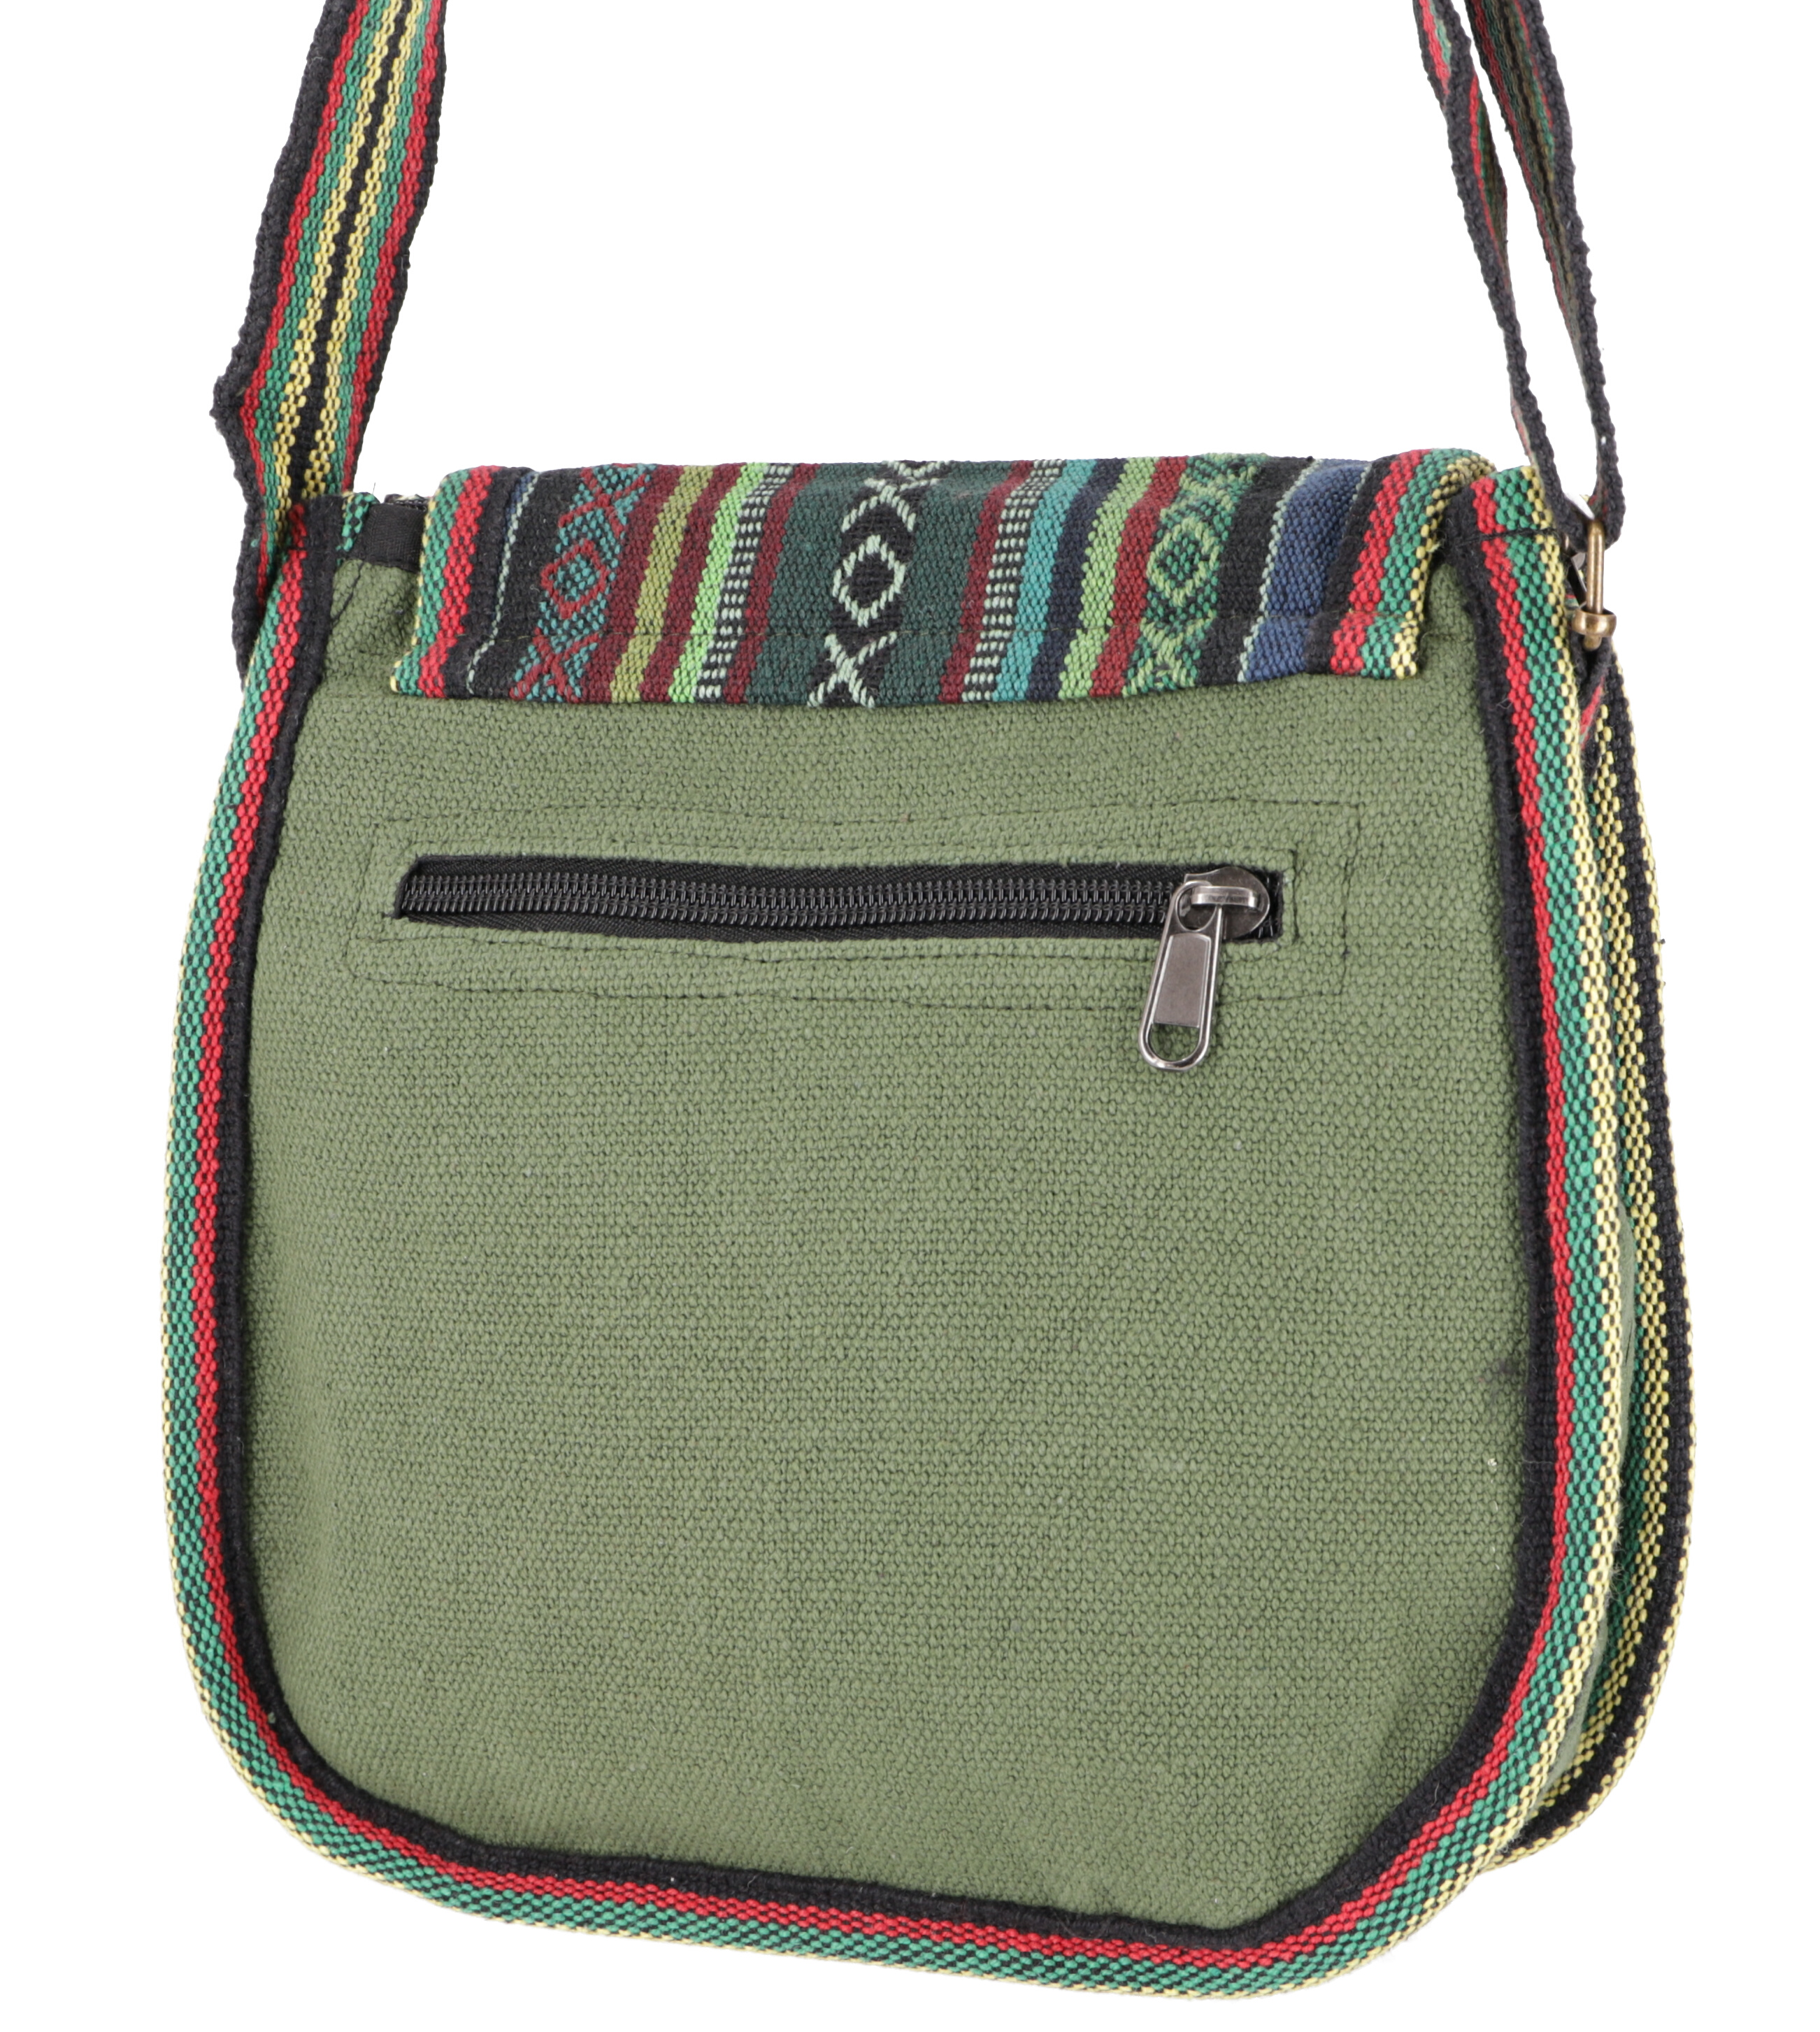 Ethno Shoulder Bag, Boho Bag olive green 26x26x7 cm